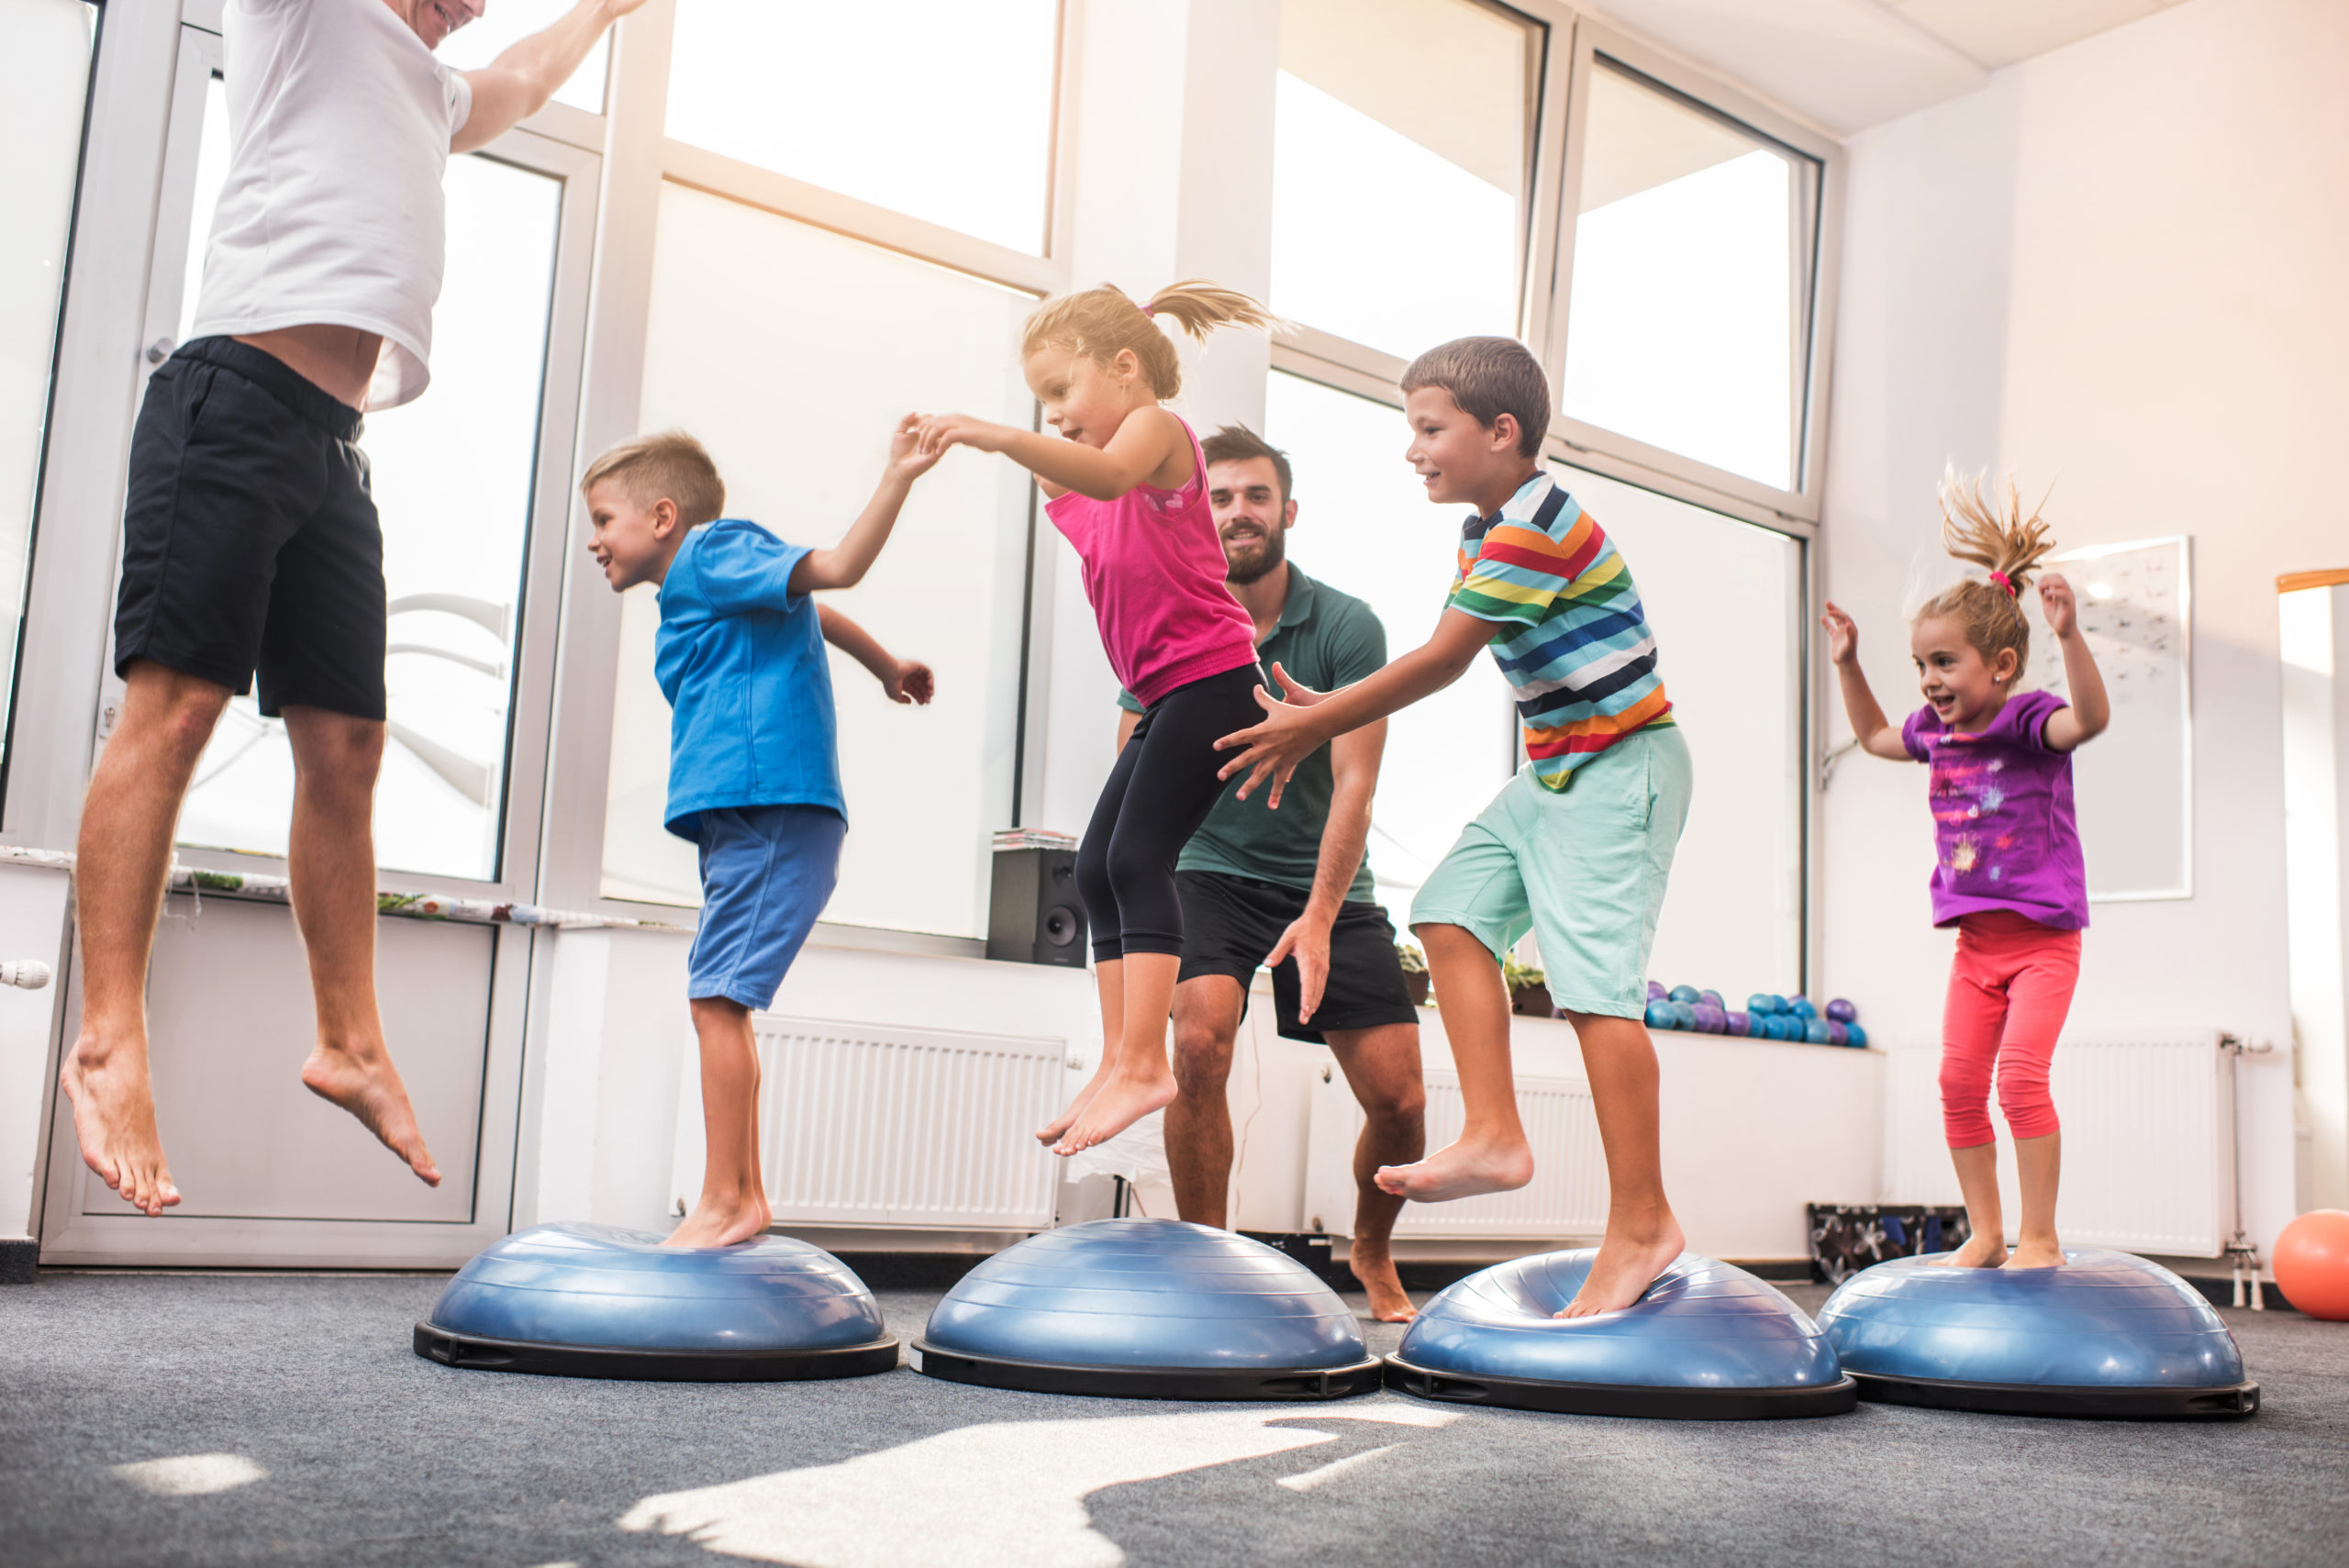 Happy children having fun while jumping on bosu balls on sports training in a health club. Male coaches are with them.